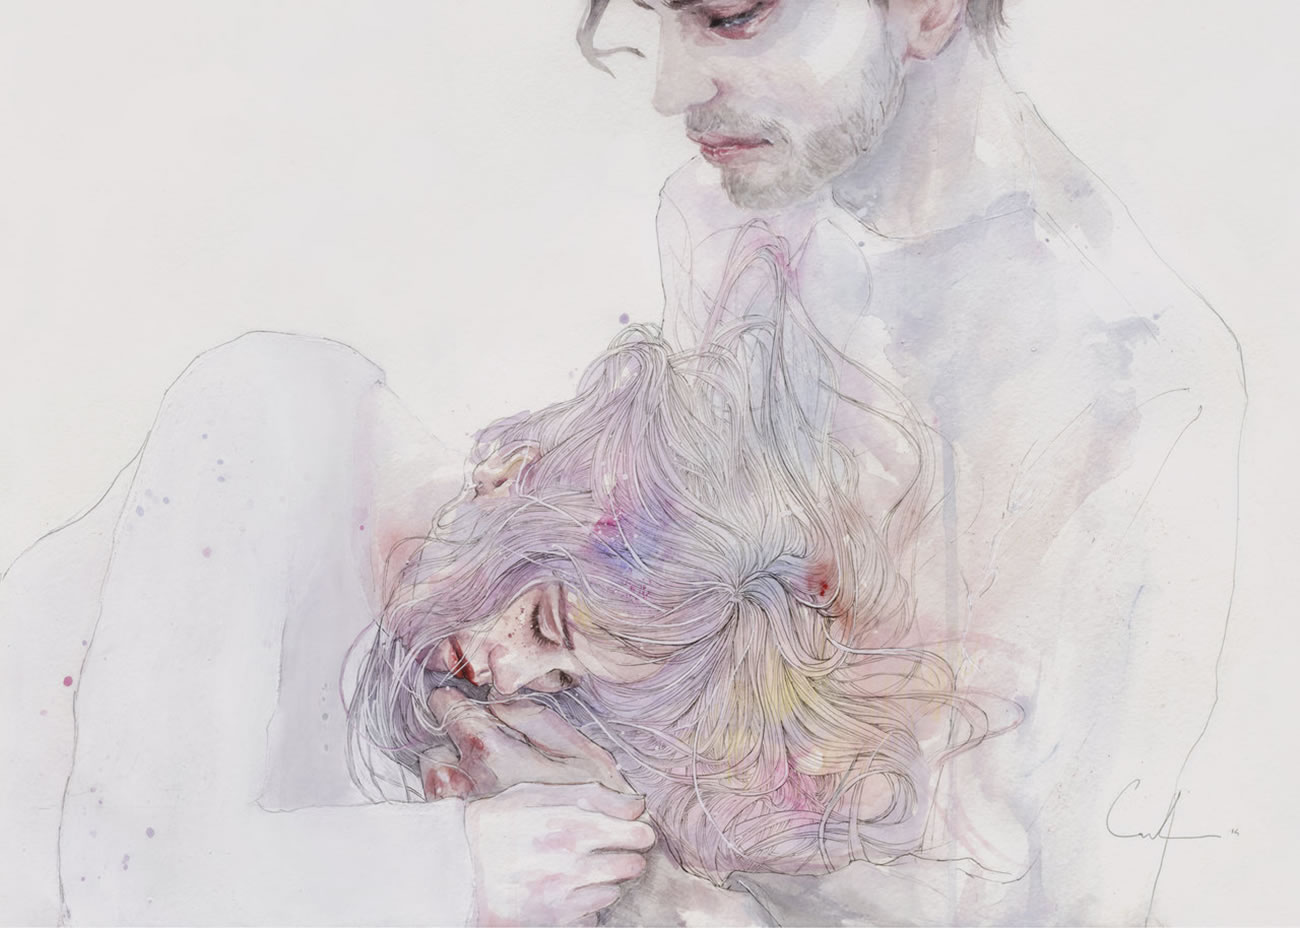 man holding woman's head, painting by agnes cecile